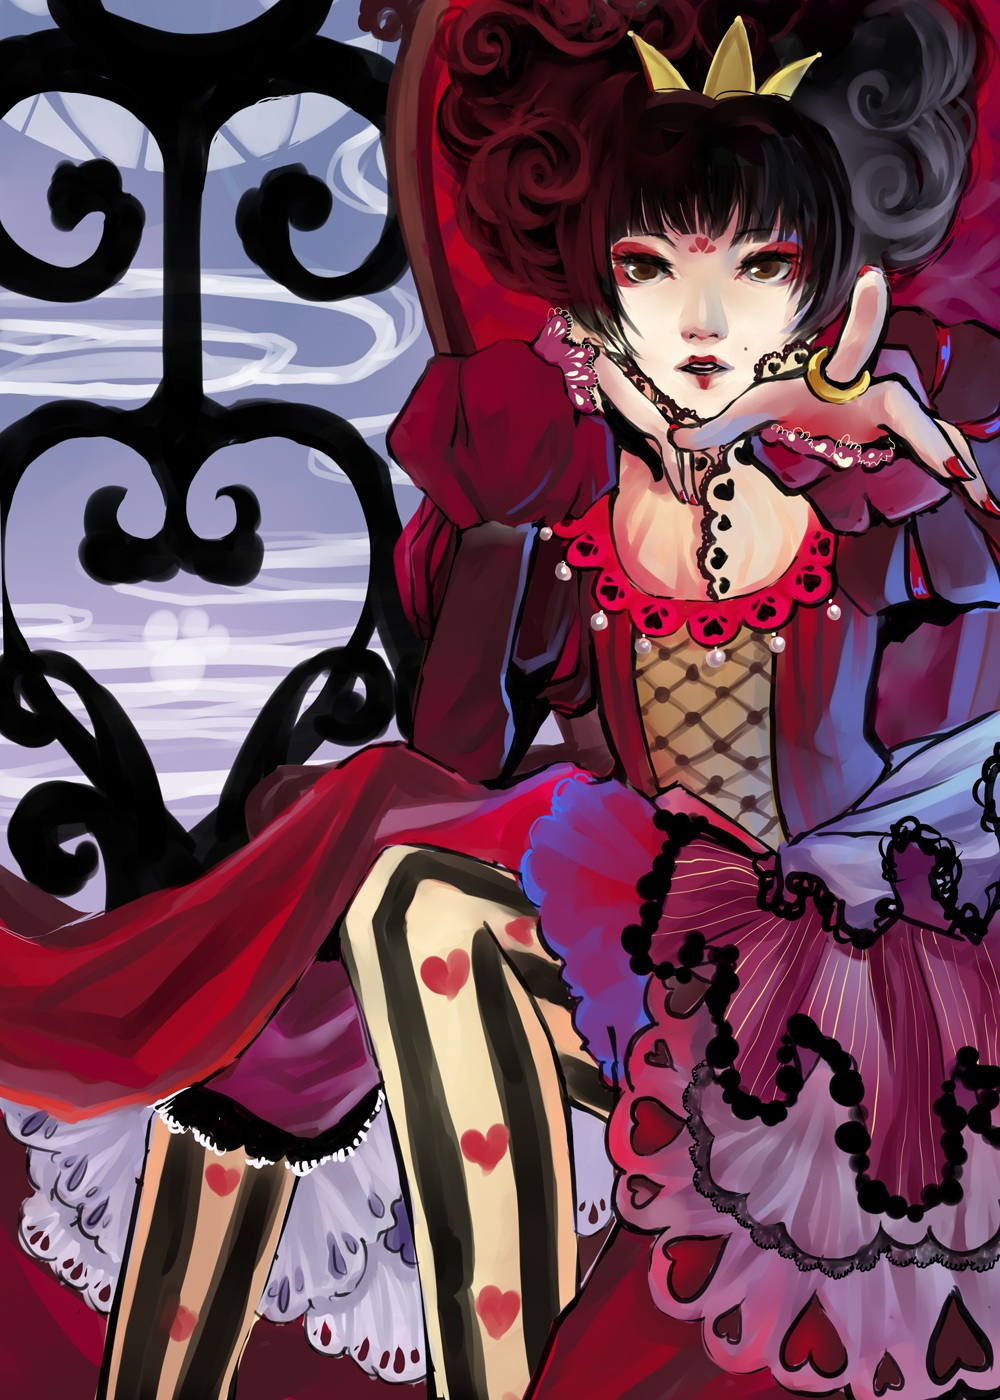 Once Upon A Time Wallpaper Iphone Queen Of Hearts Alice In Wonderland Zerochan Anime